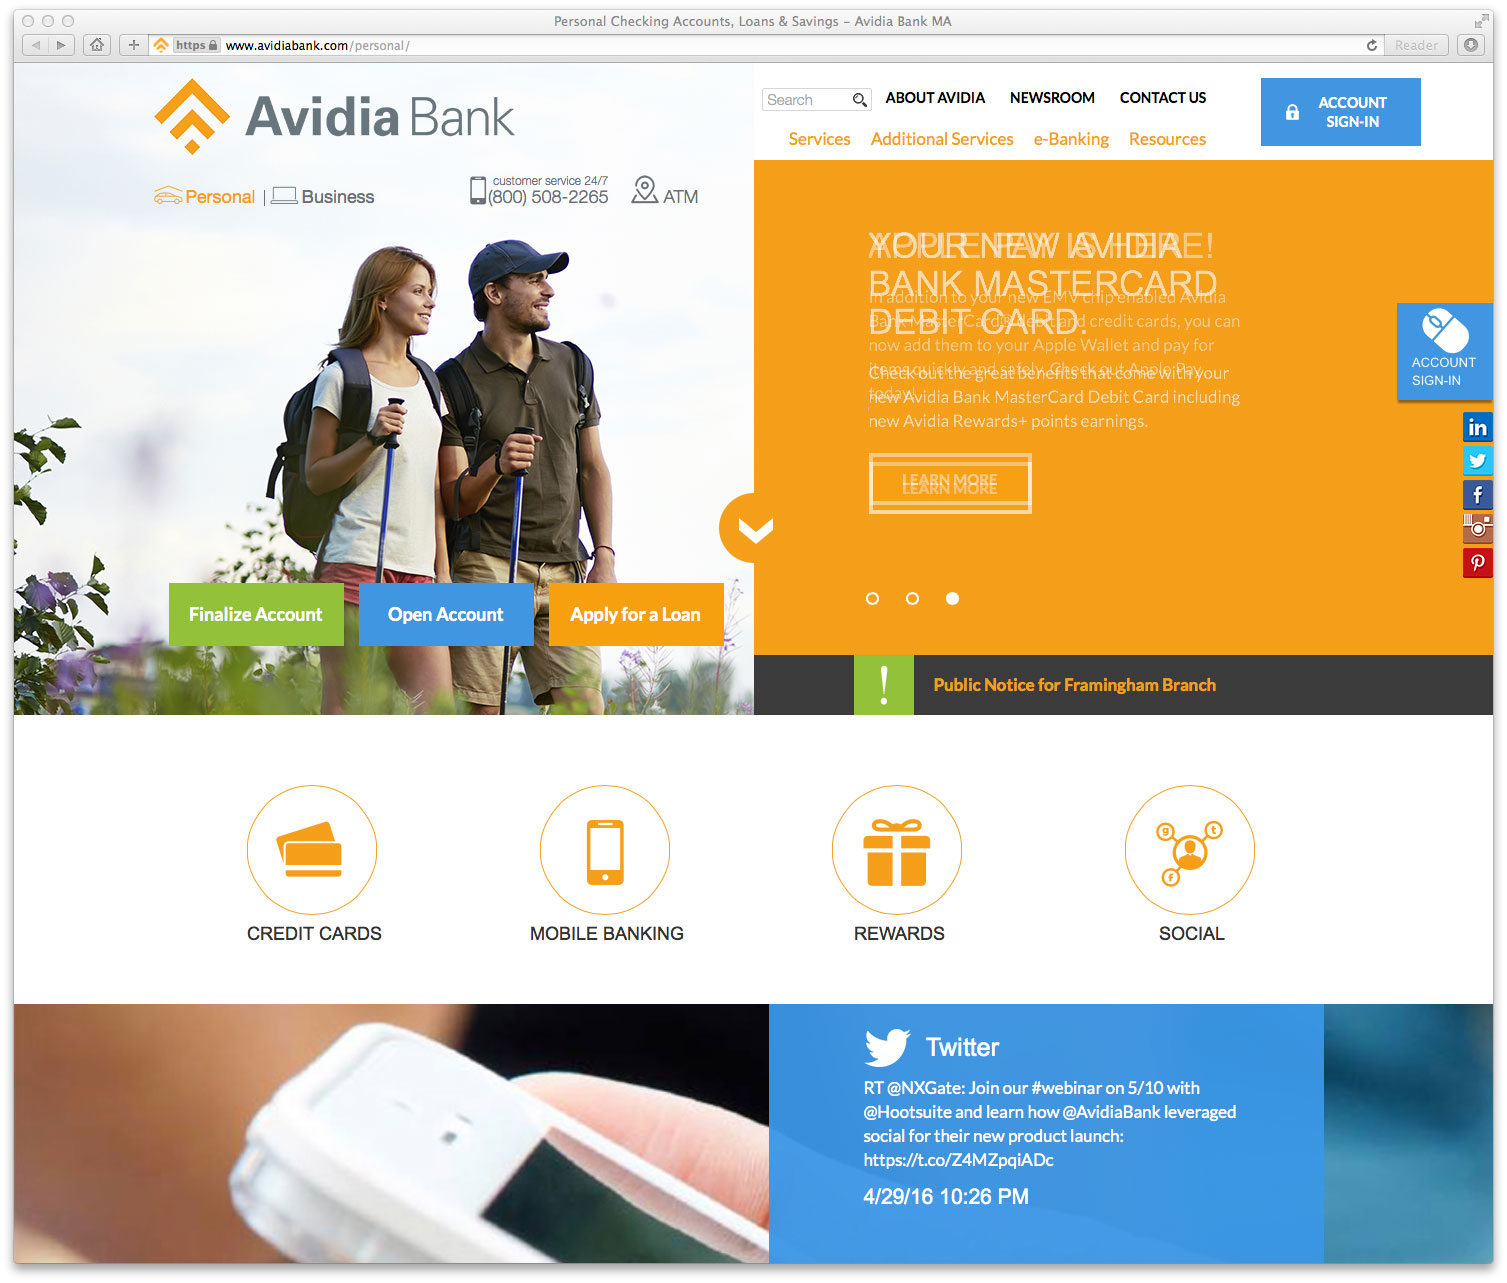 35 Innovative and Inspirational Website Designs in Banking